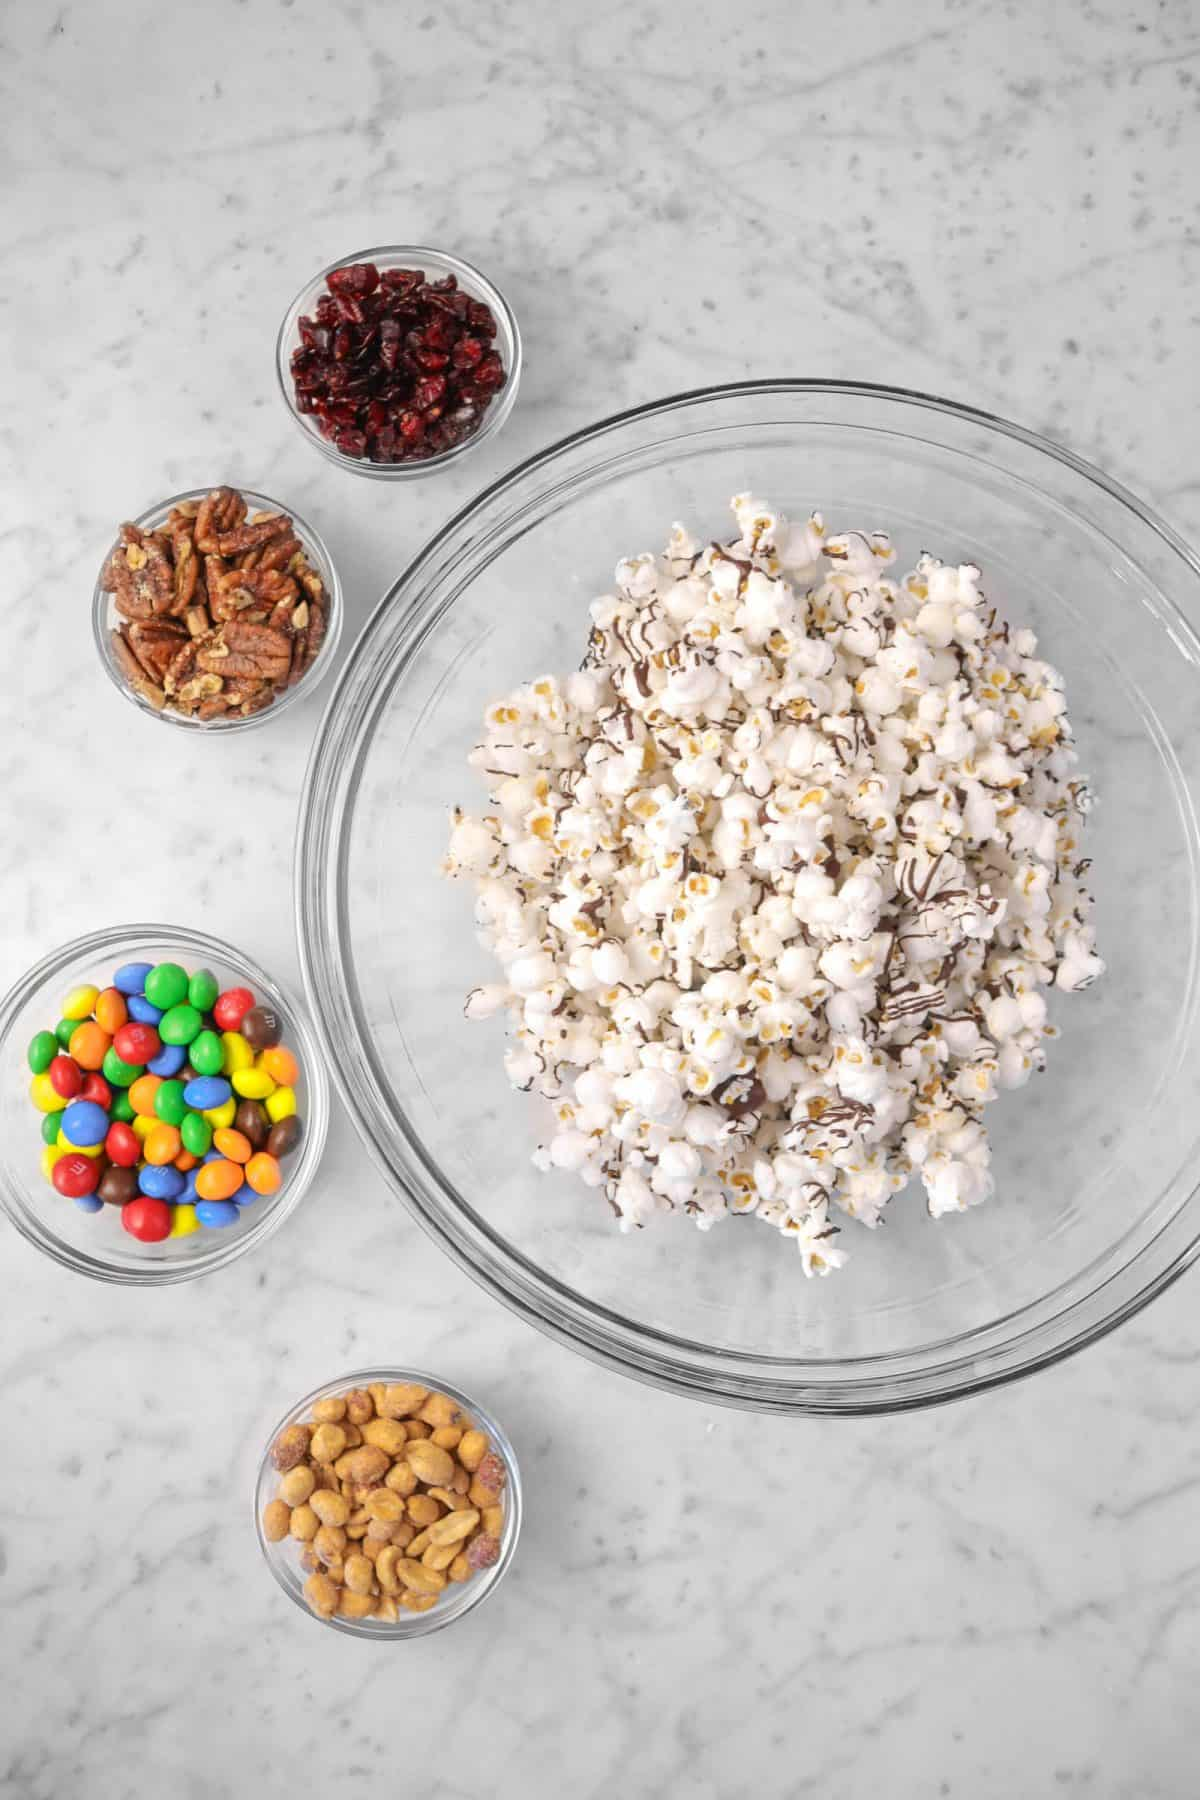 pop corn in a glass bowl with bowls of cranberries, nuts, and m&m's next to it